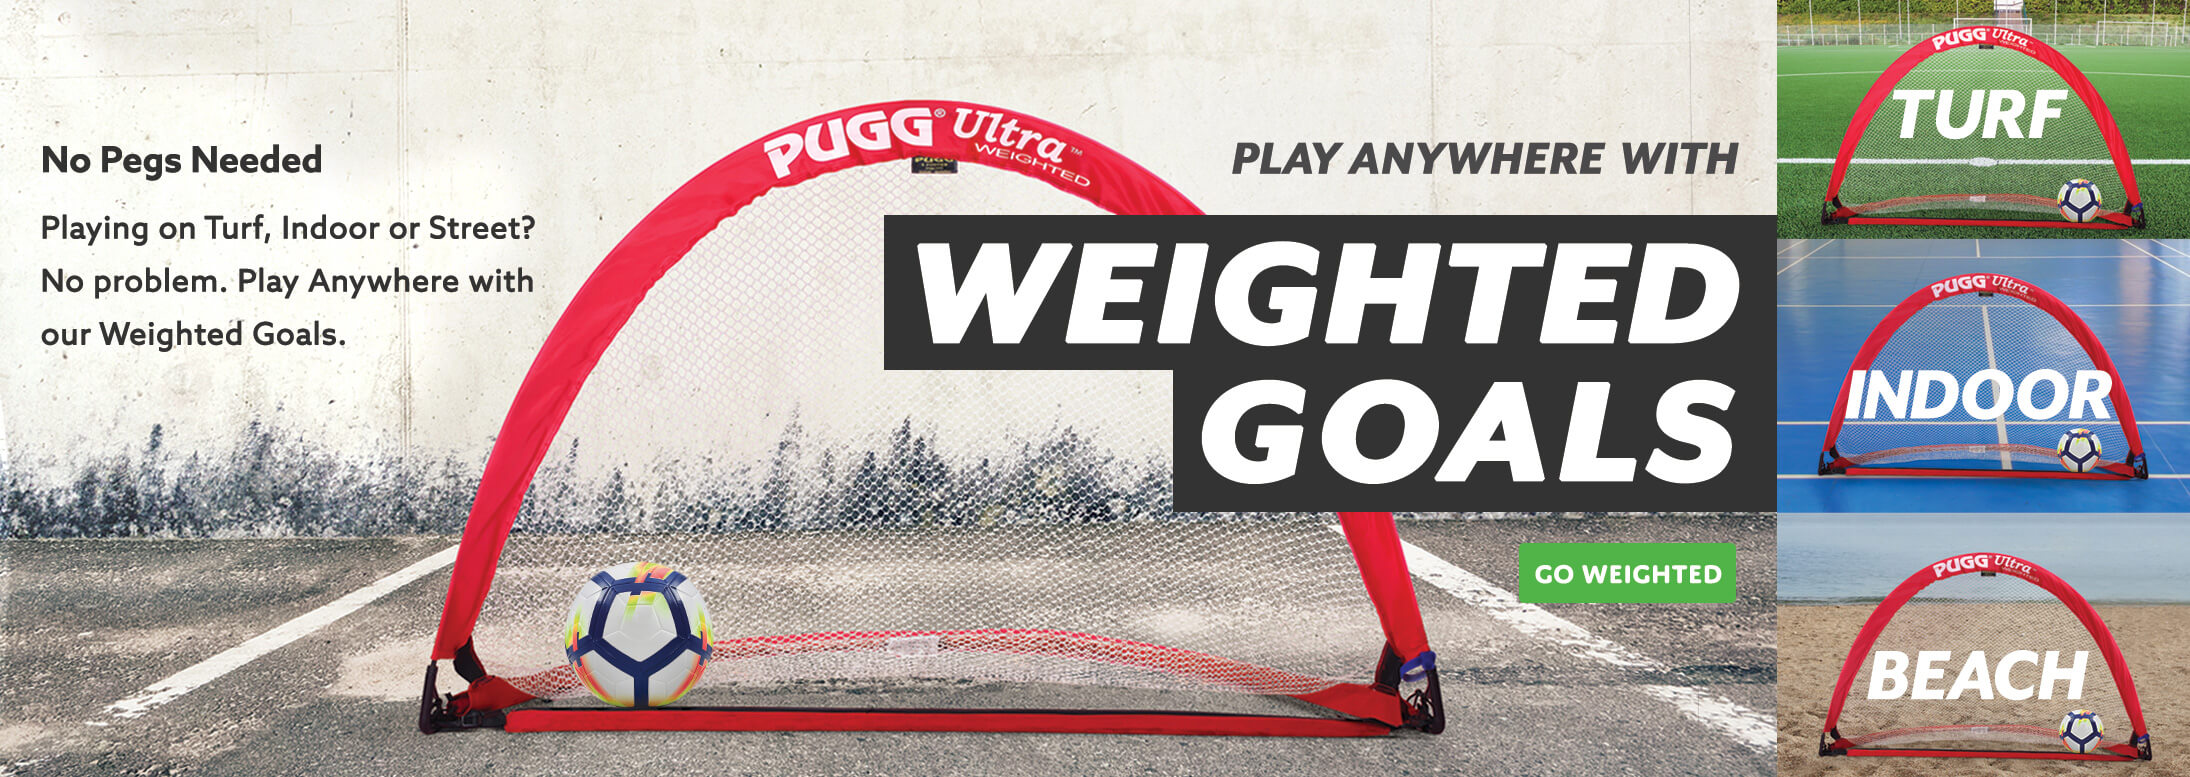 Play Anywhere with Weighted Goals